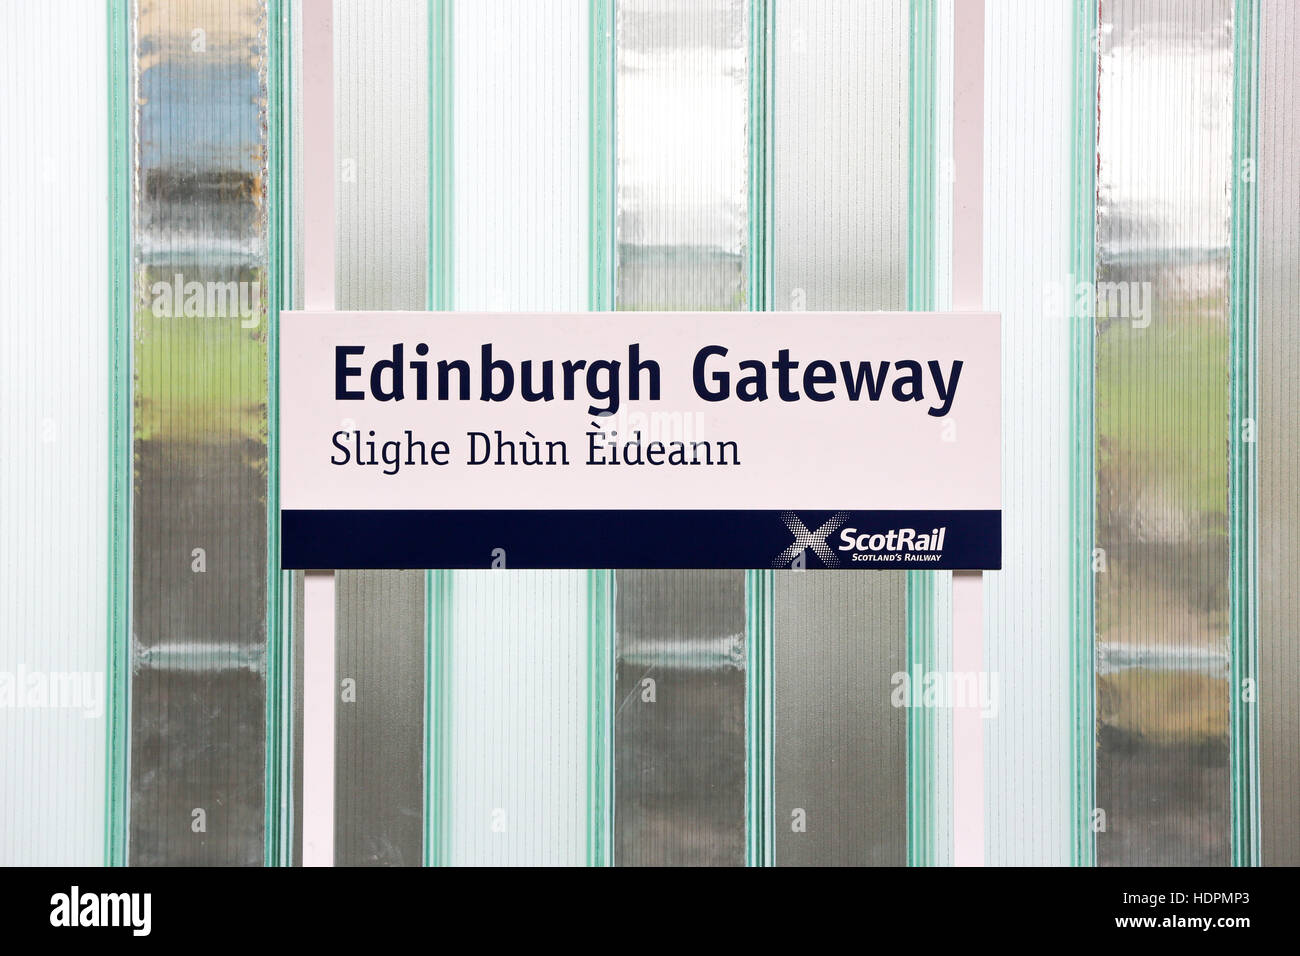 Edinburgh Gateway train station sign with Gaelic translation. - Stock Image